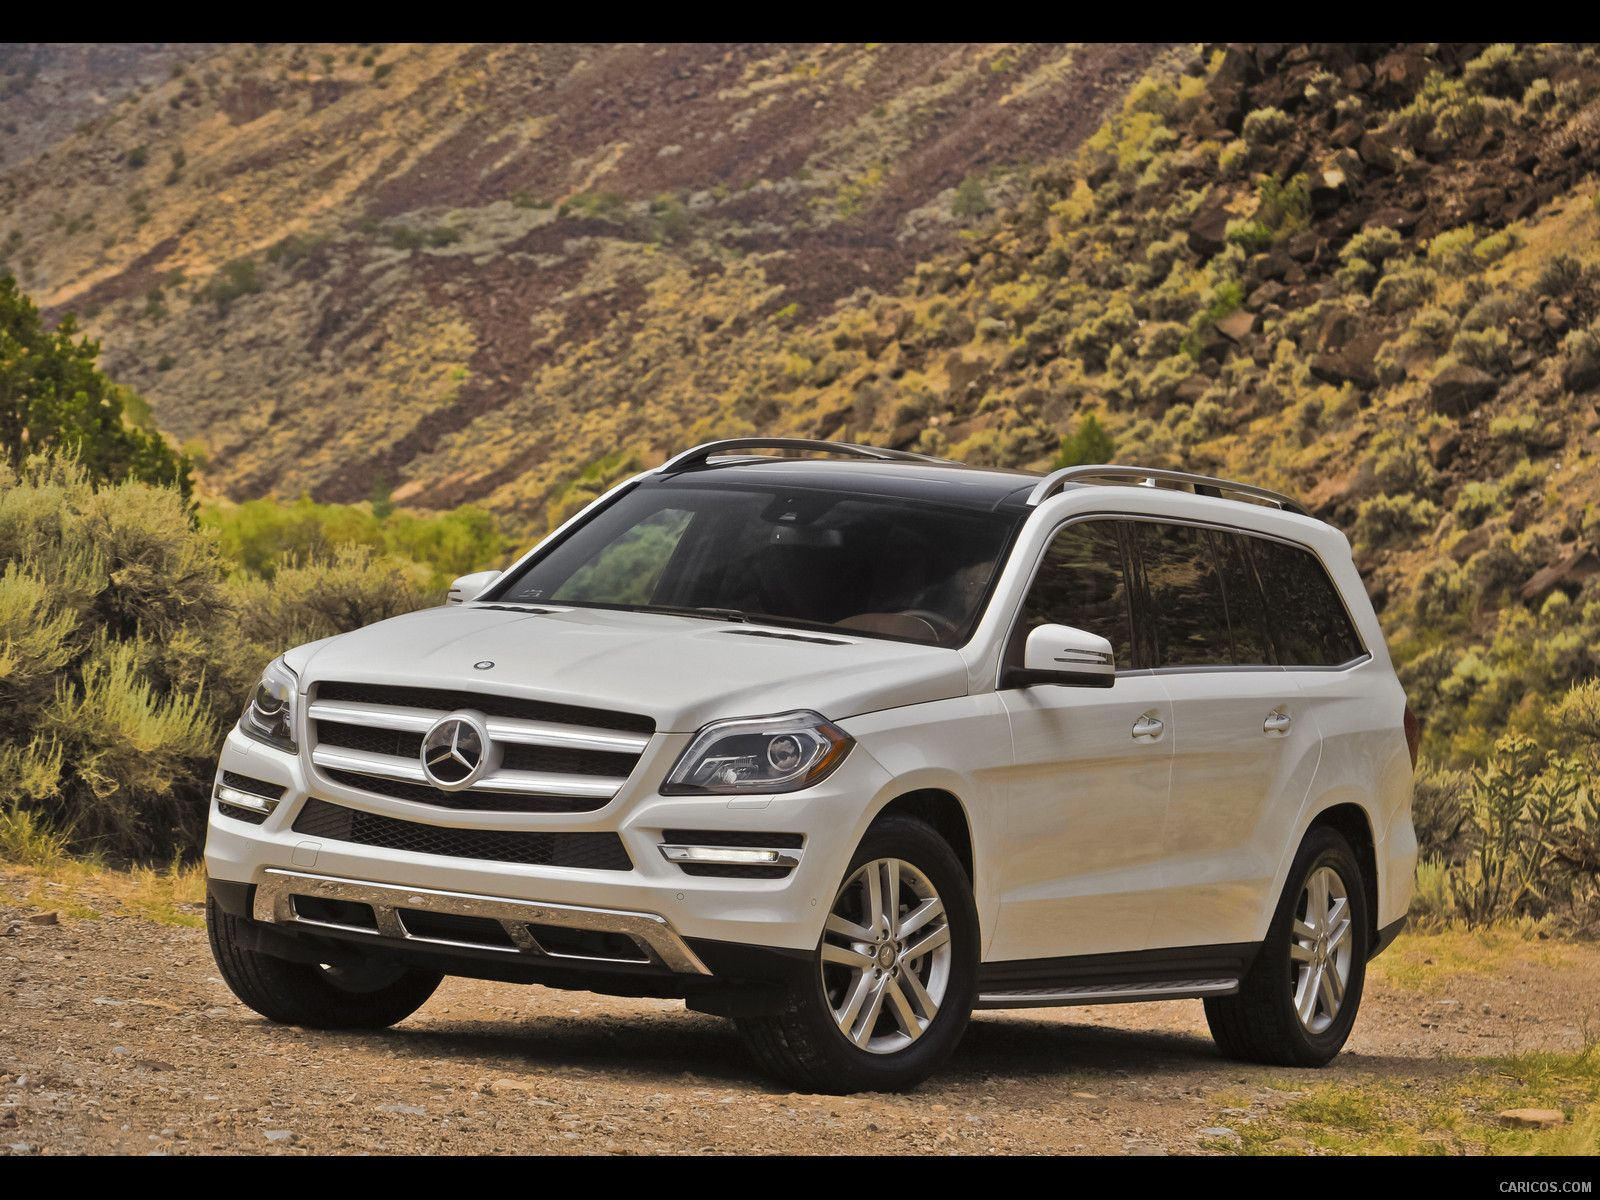 2013 Mercedes-Benz GL-Class -   Mercedes-Benz GL-Class  Wikipedia the free encyclopedia  2013 mercedes-benz gl-class review  youtube Subscribe for the latest thecarconnection.com videos: http://bit.ly/wz78m1 high gear media editorial director marty padgett takes the newest full-size suv. 2013 mercedes-benz gl-class The mercedes-amg gt r; the all-new 2017 mercedes-amg glc43; the new 2017 cla; the all-new 2017 glc coupe; the all-new 2017 mercedes-amg e43; the all-new 2017 c-class…